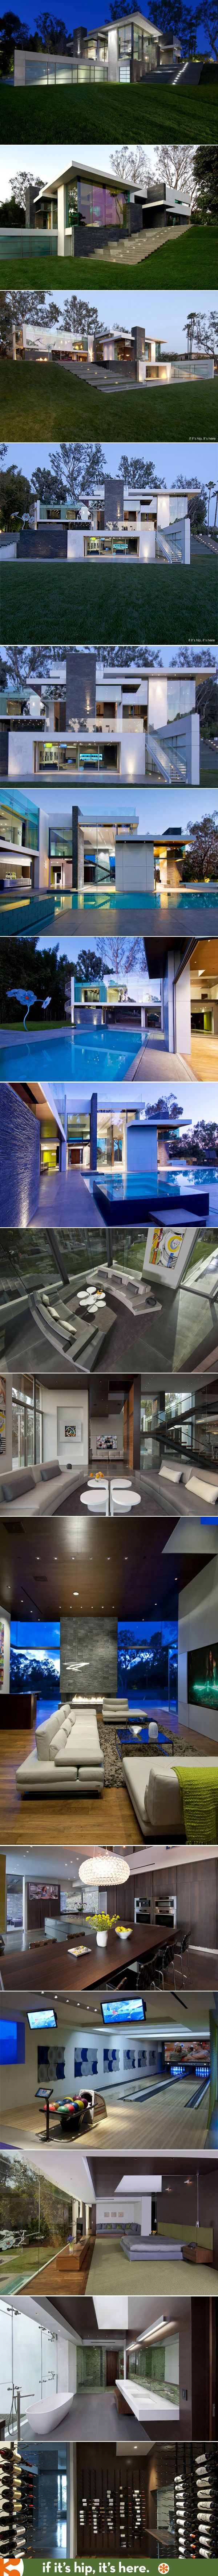 146 best Houses images on Pinterest | Home ideas, House blueprints ...